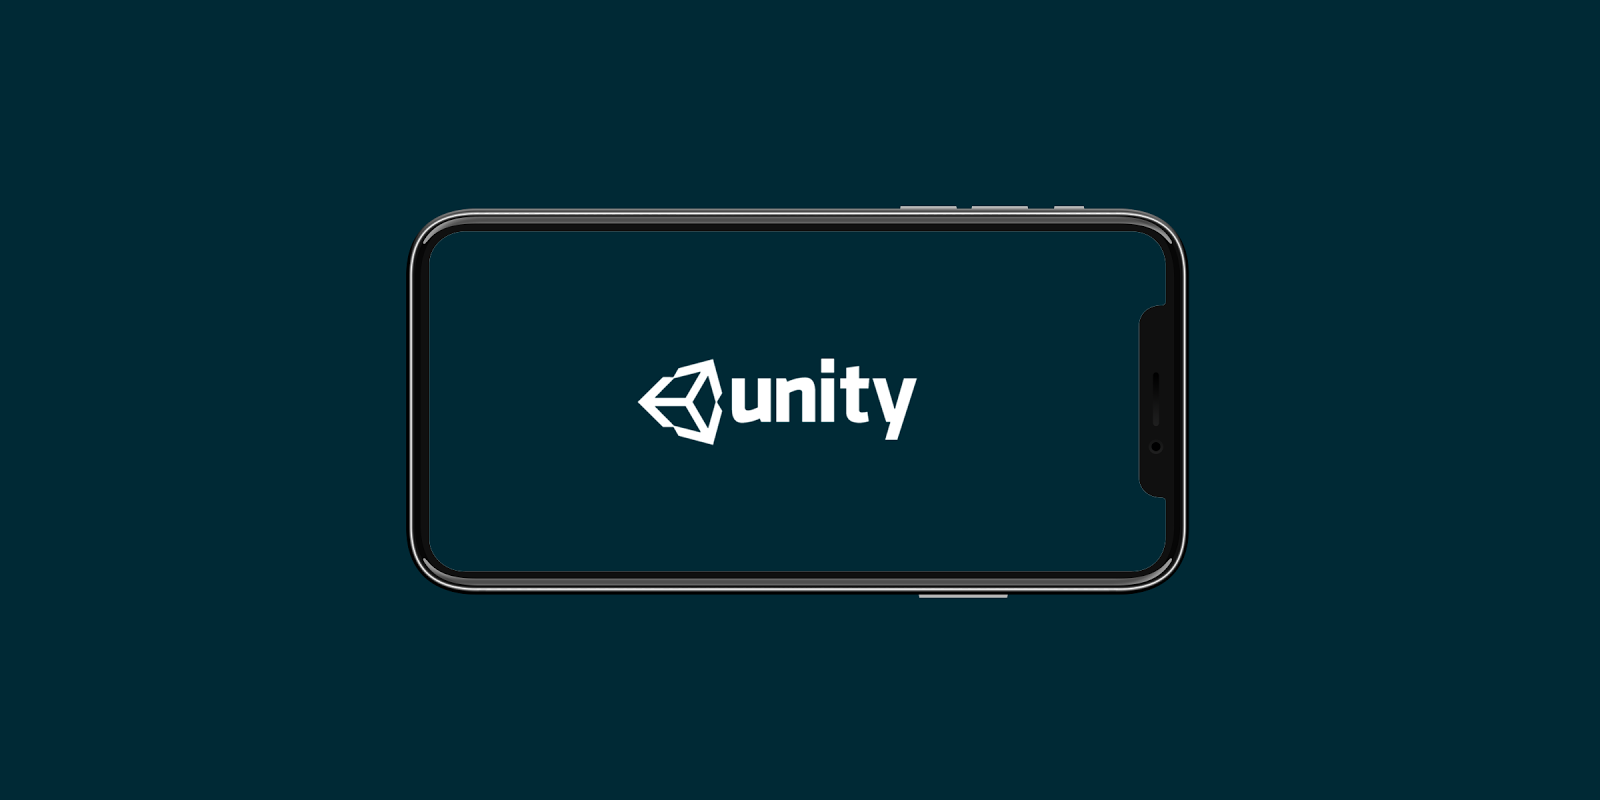 unity command line avoid reimporting if license key is wrong